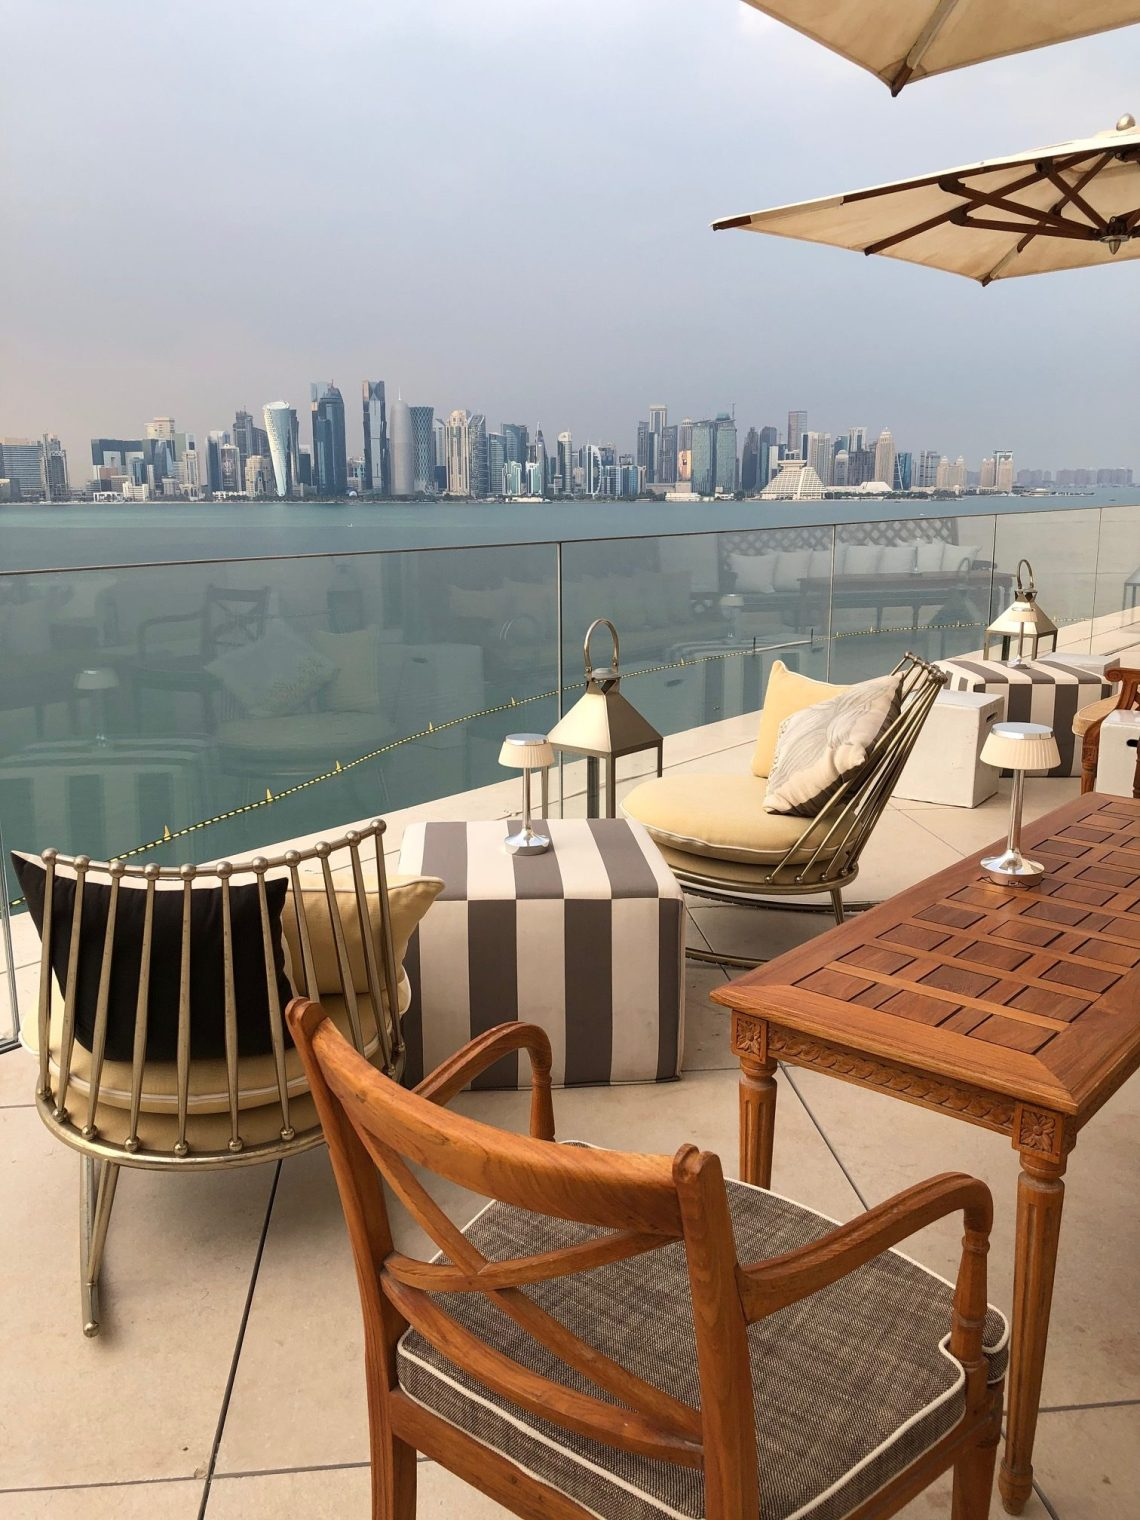 Seven places to dine outside in Doha this winter